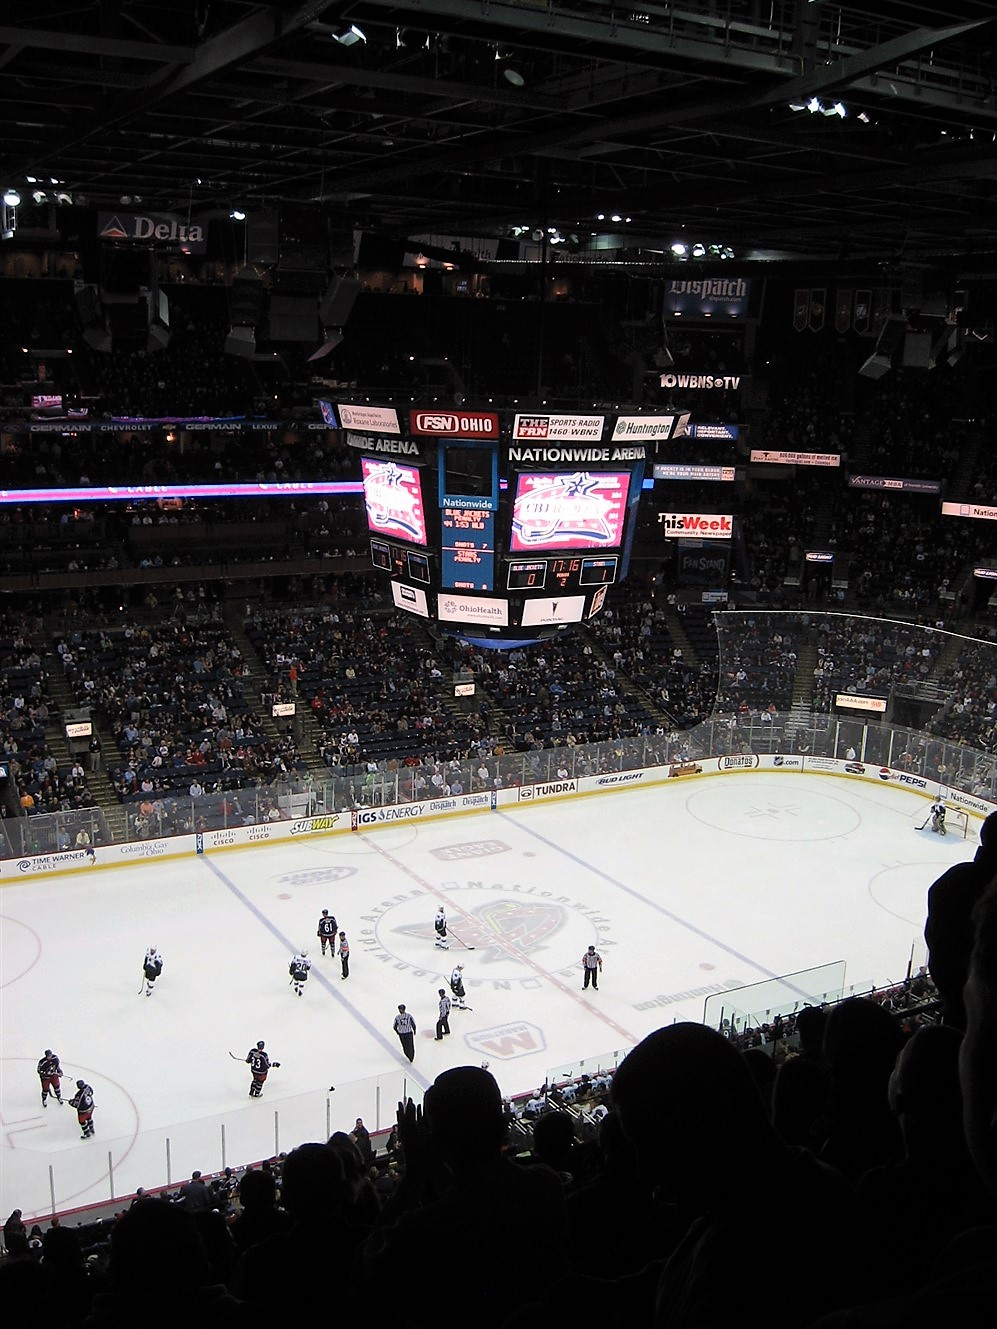 2007 04 05 Columbus Blue Jackets 17.jpg